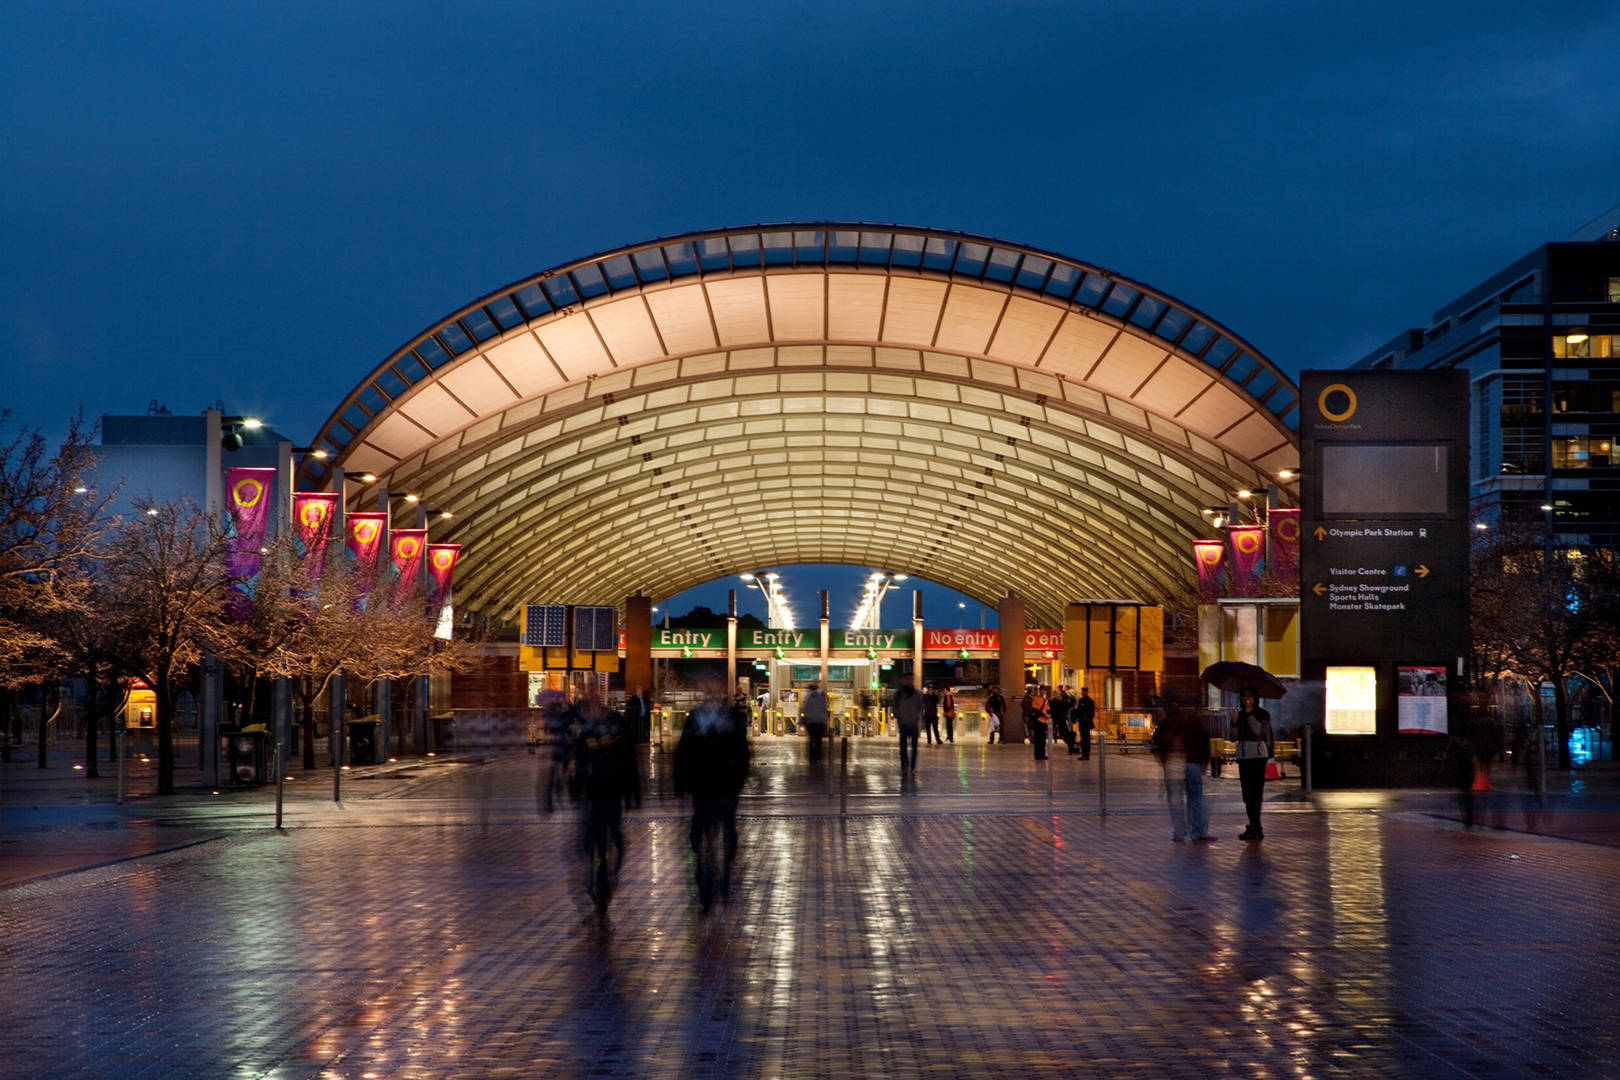 Olympic Park Train Station - train station at night - photo by Paul K Robbins